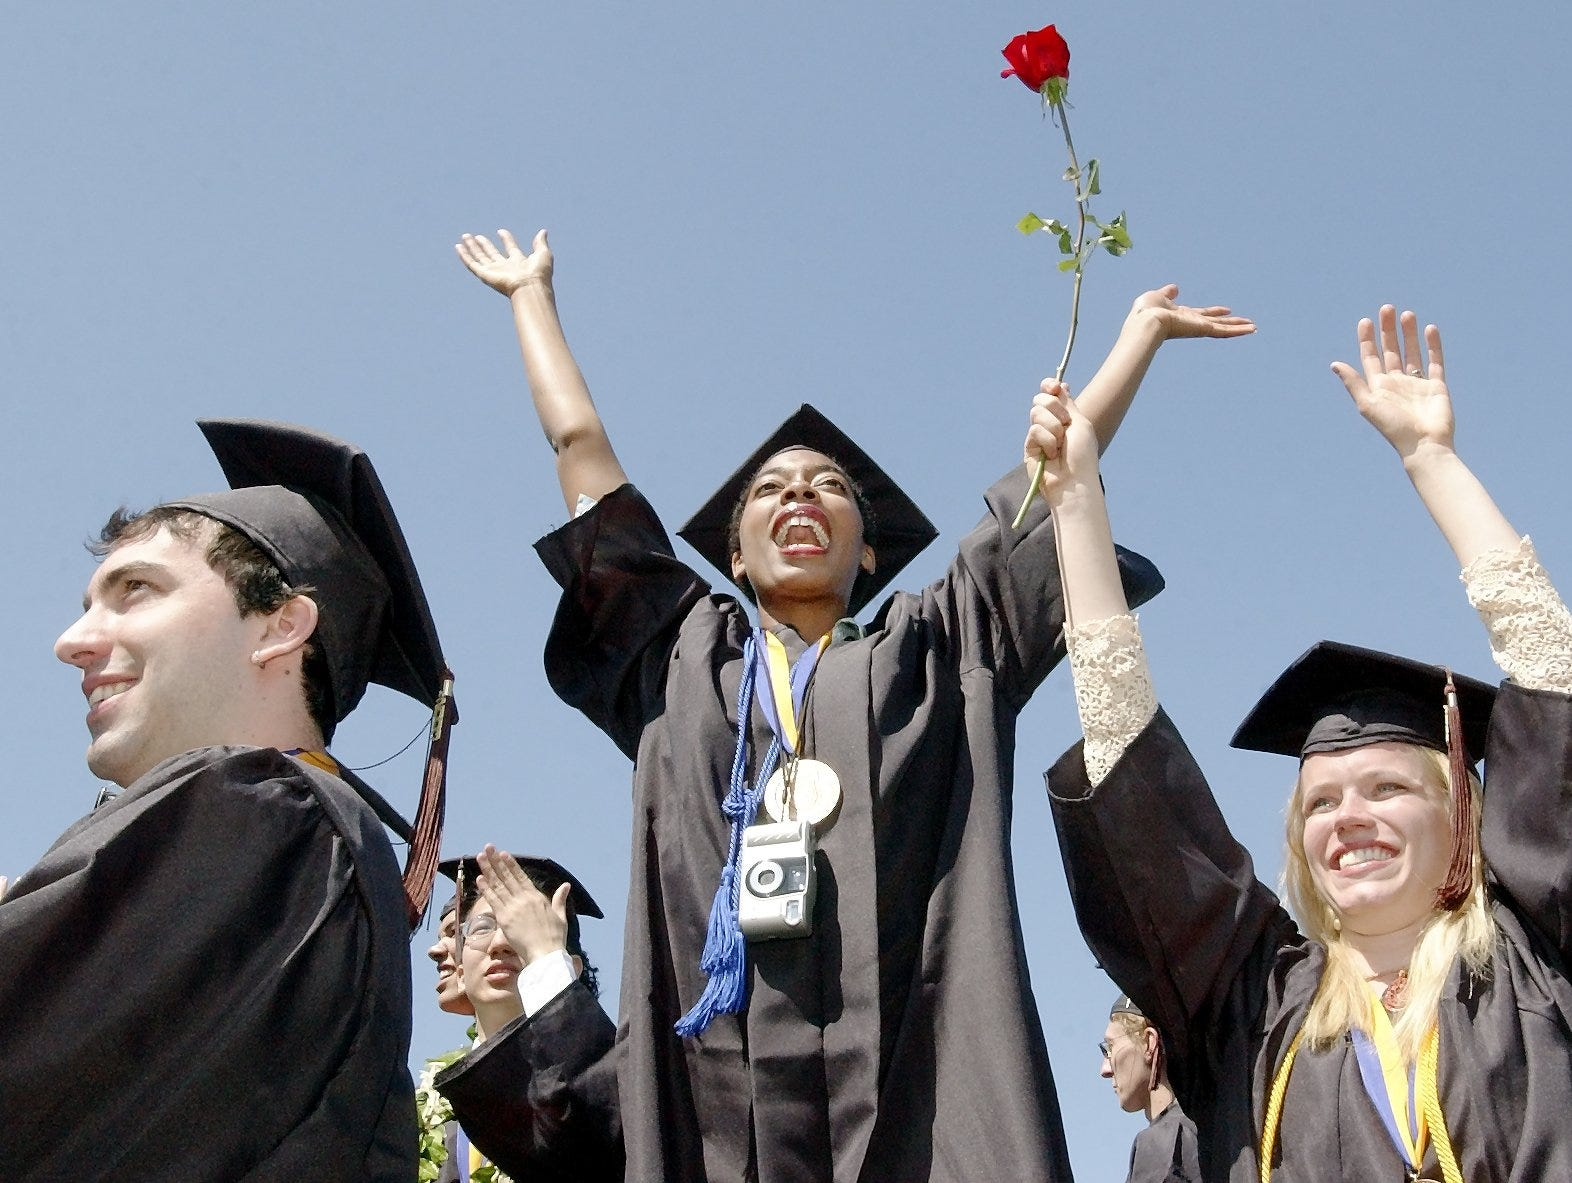 2003: Ithaca College graduates Michael Hemmenway, left, Ronica Reddick and Laurel Beversdorf wave to their parents in thanks for supporting them through college Sunday at the end of commencement ceremonies at Butterfield Stadium. Degrees were conferred onto 1,350 graduates at the annual commencement exercise.